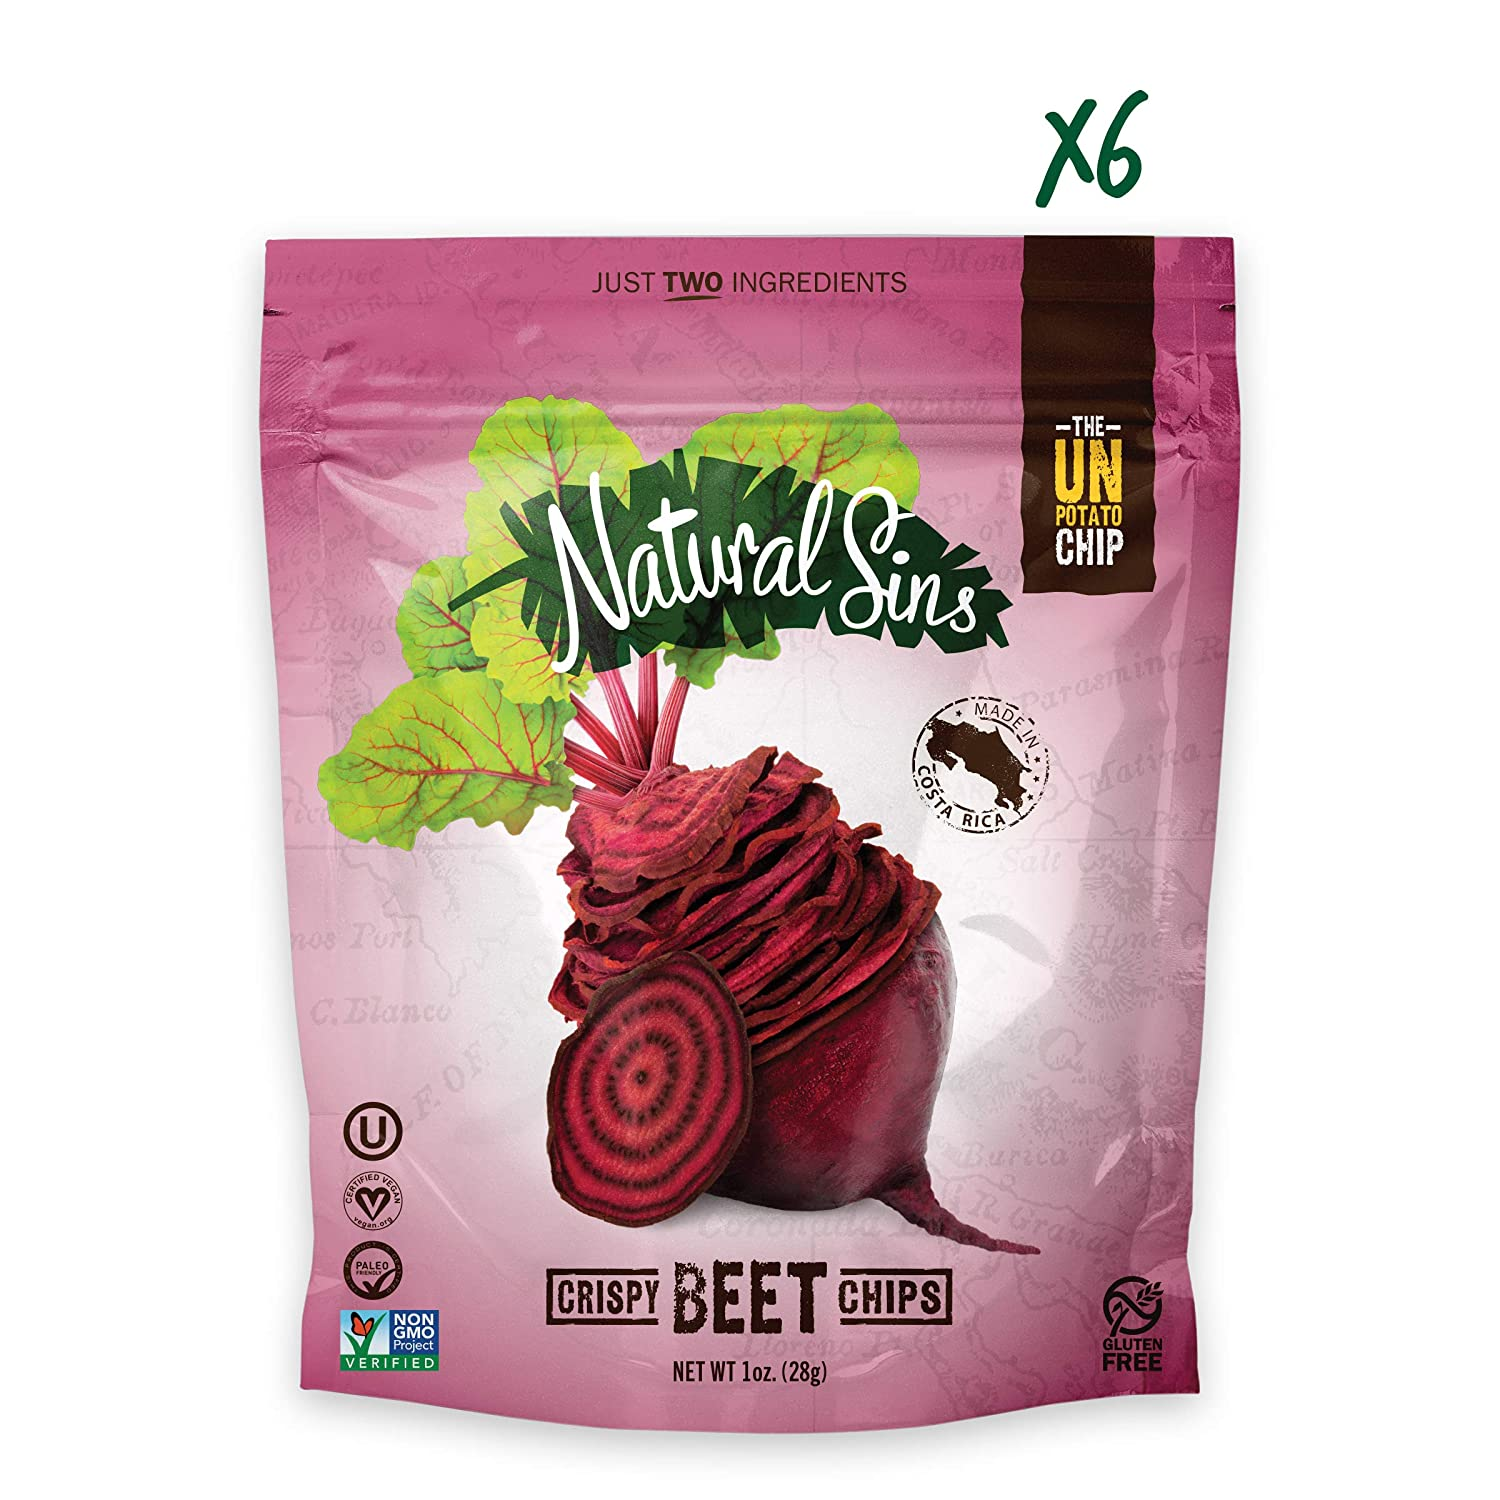 Crispy Beet Chips - Naturals Sins - Certified Paleo Friendly by the Paleo Foundation